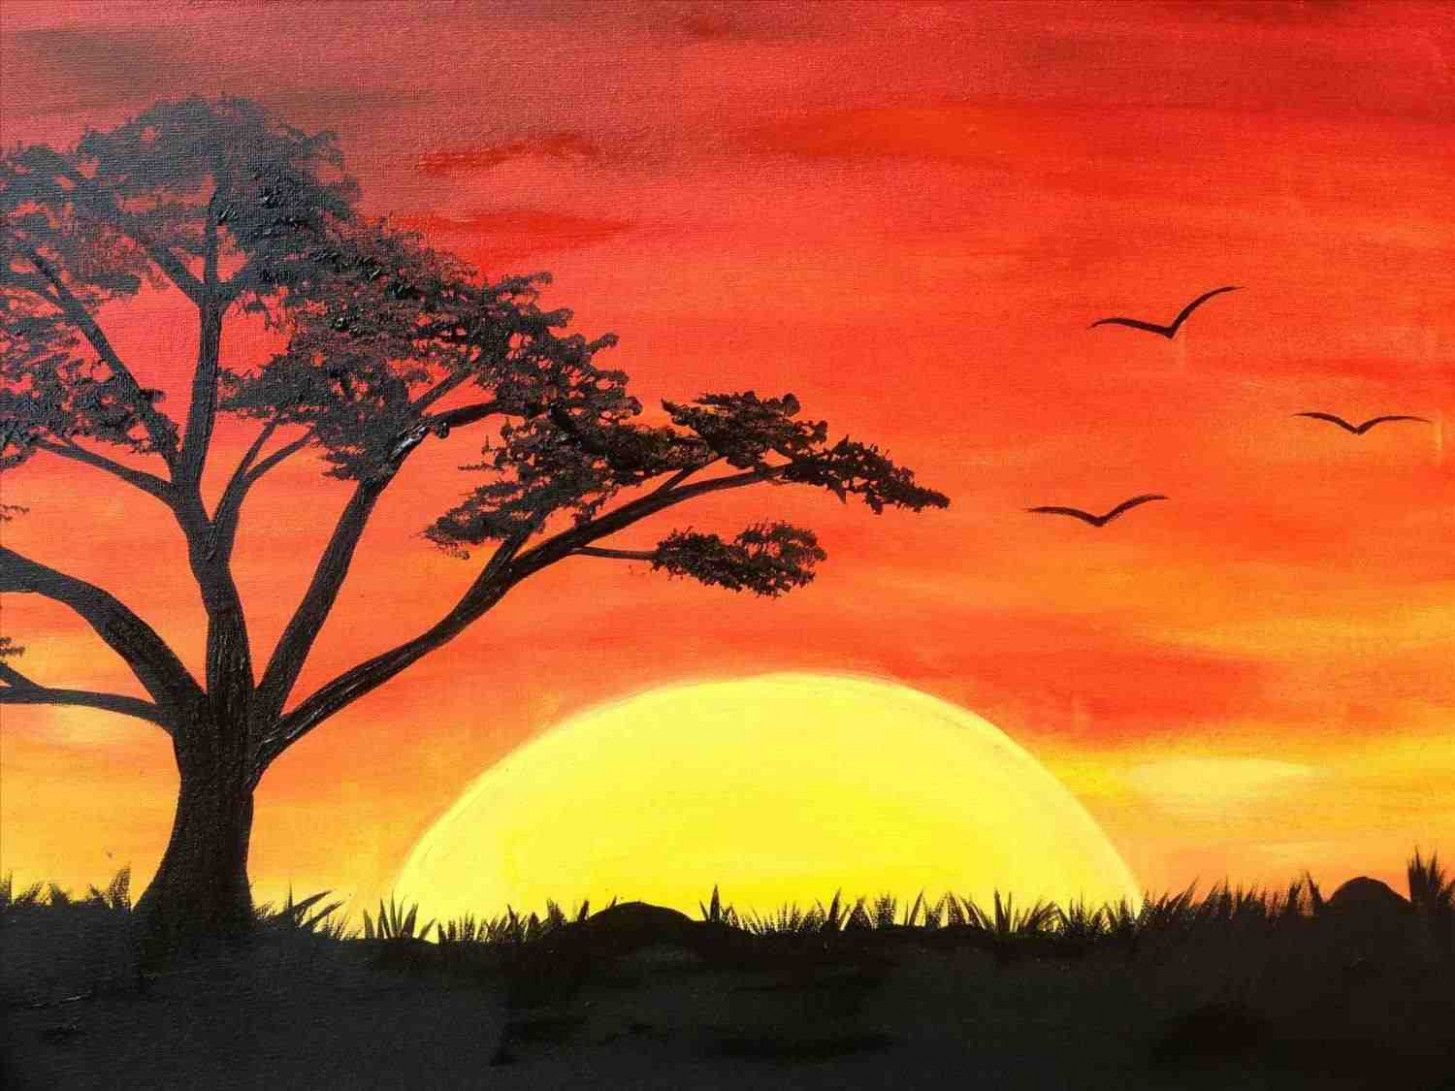 How To Have A Fantastic Easy Painting Images With Minimal Spending In 2020 Sunrise Painting Scenery Paintings Watercolor Paintings Easy